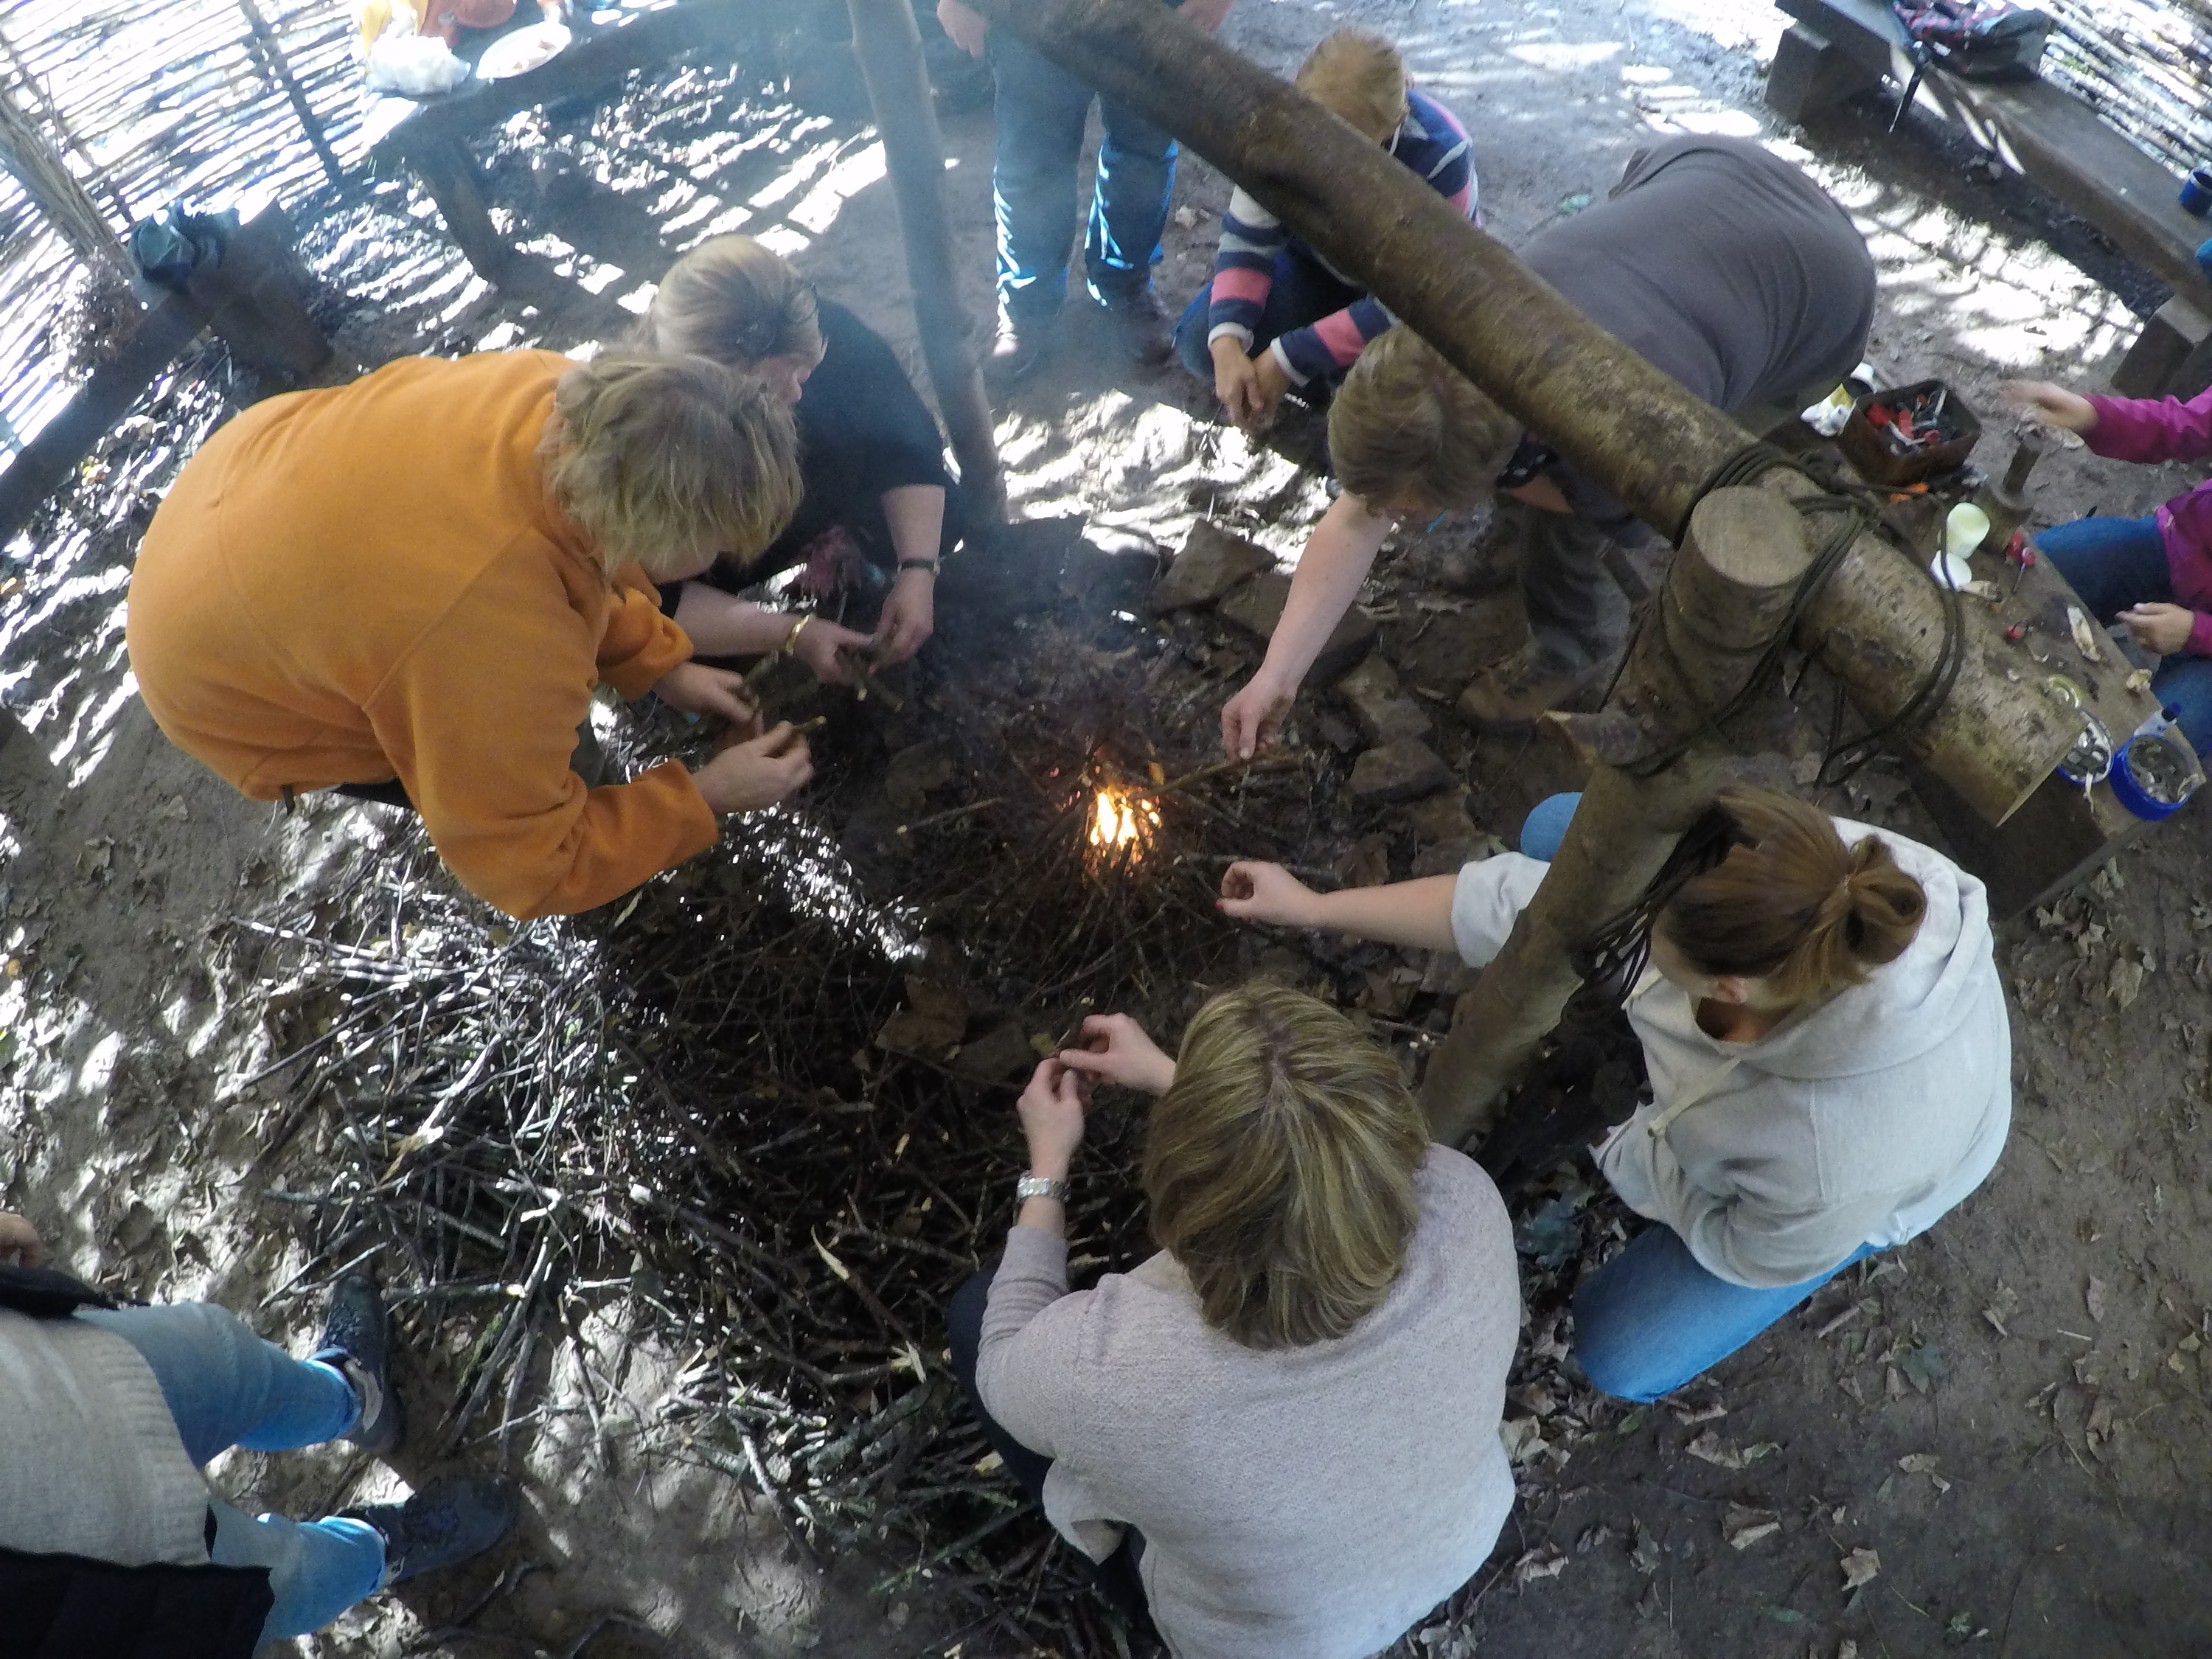 Working as a team to light the campfire